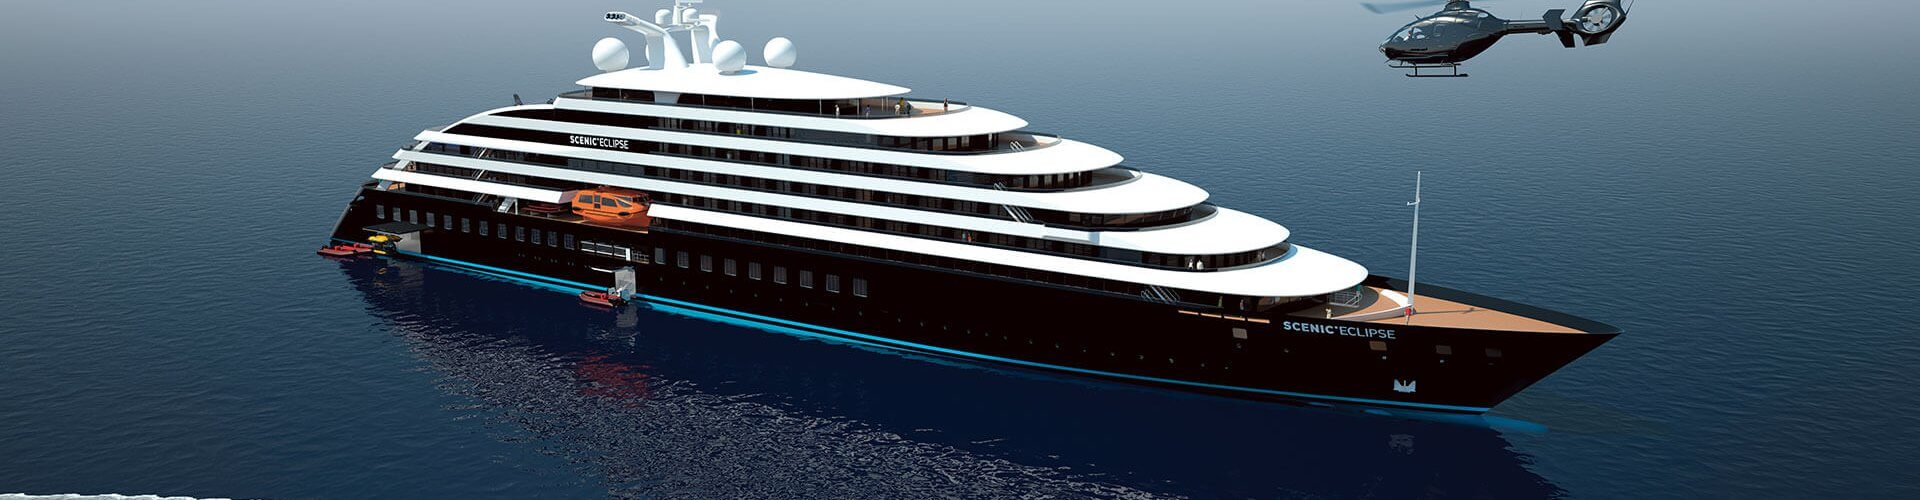 Scenic Offers New Details on the World's First Discovery Yacht – Scenic Eclipse